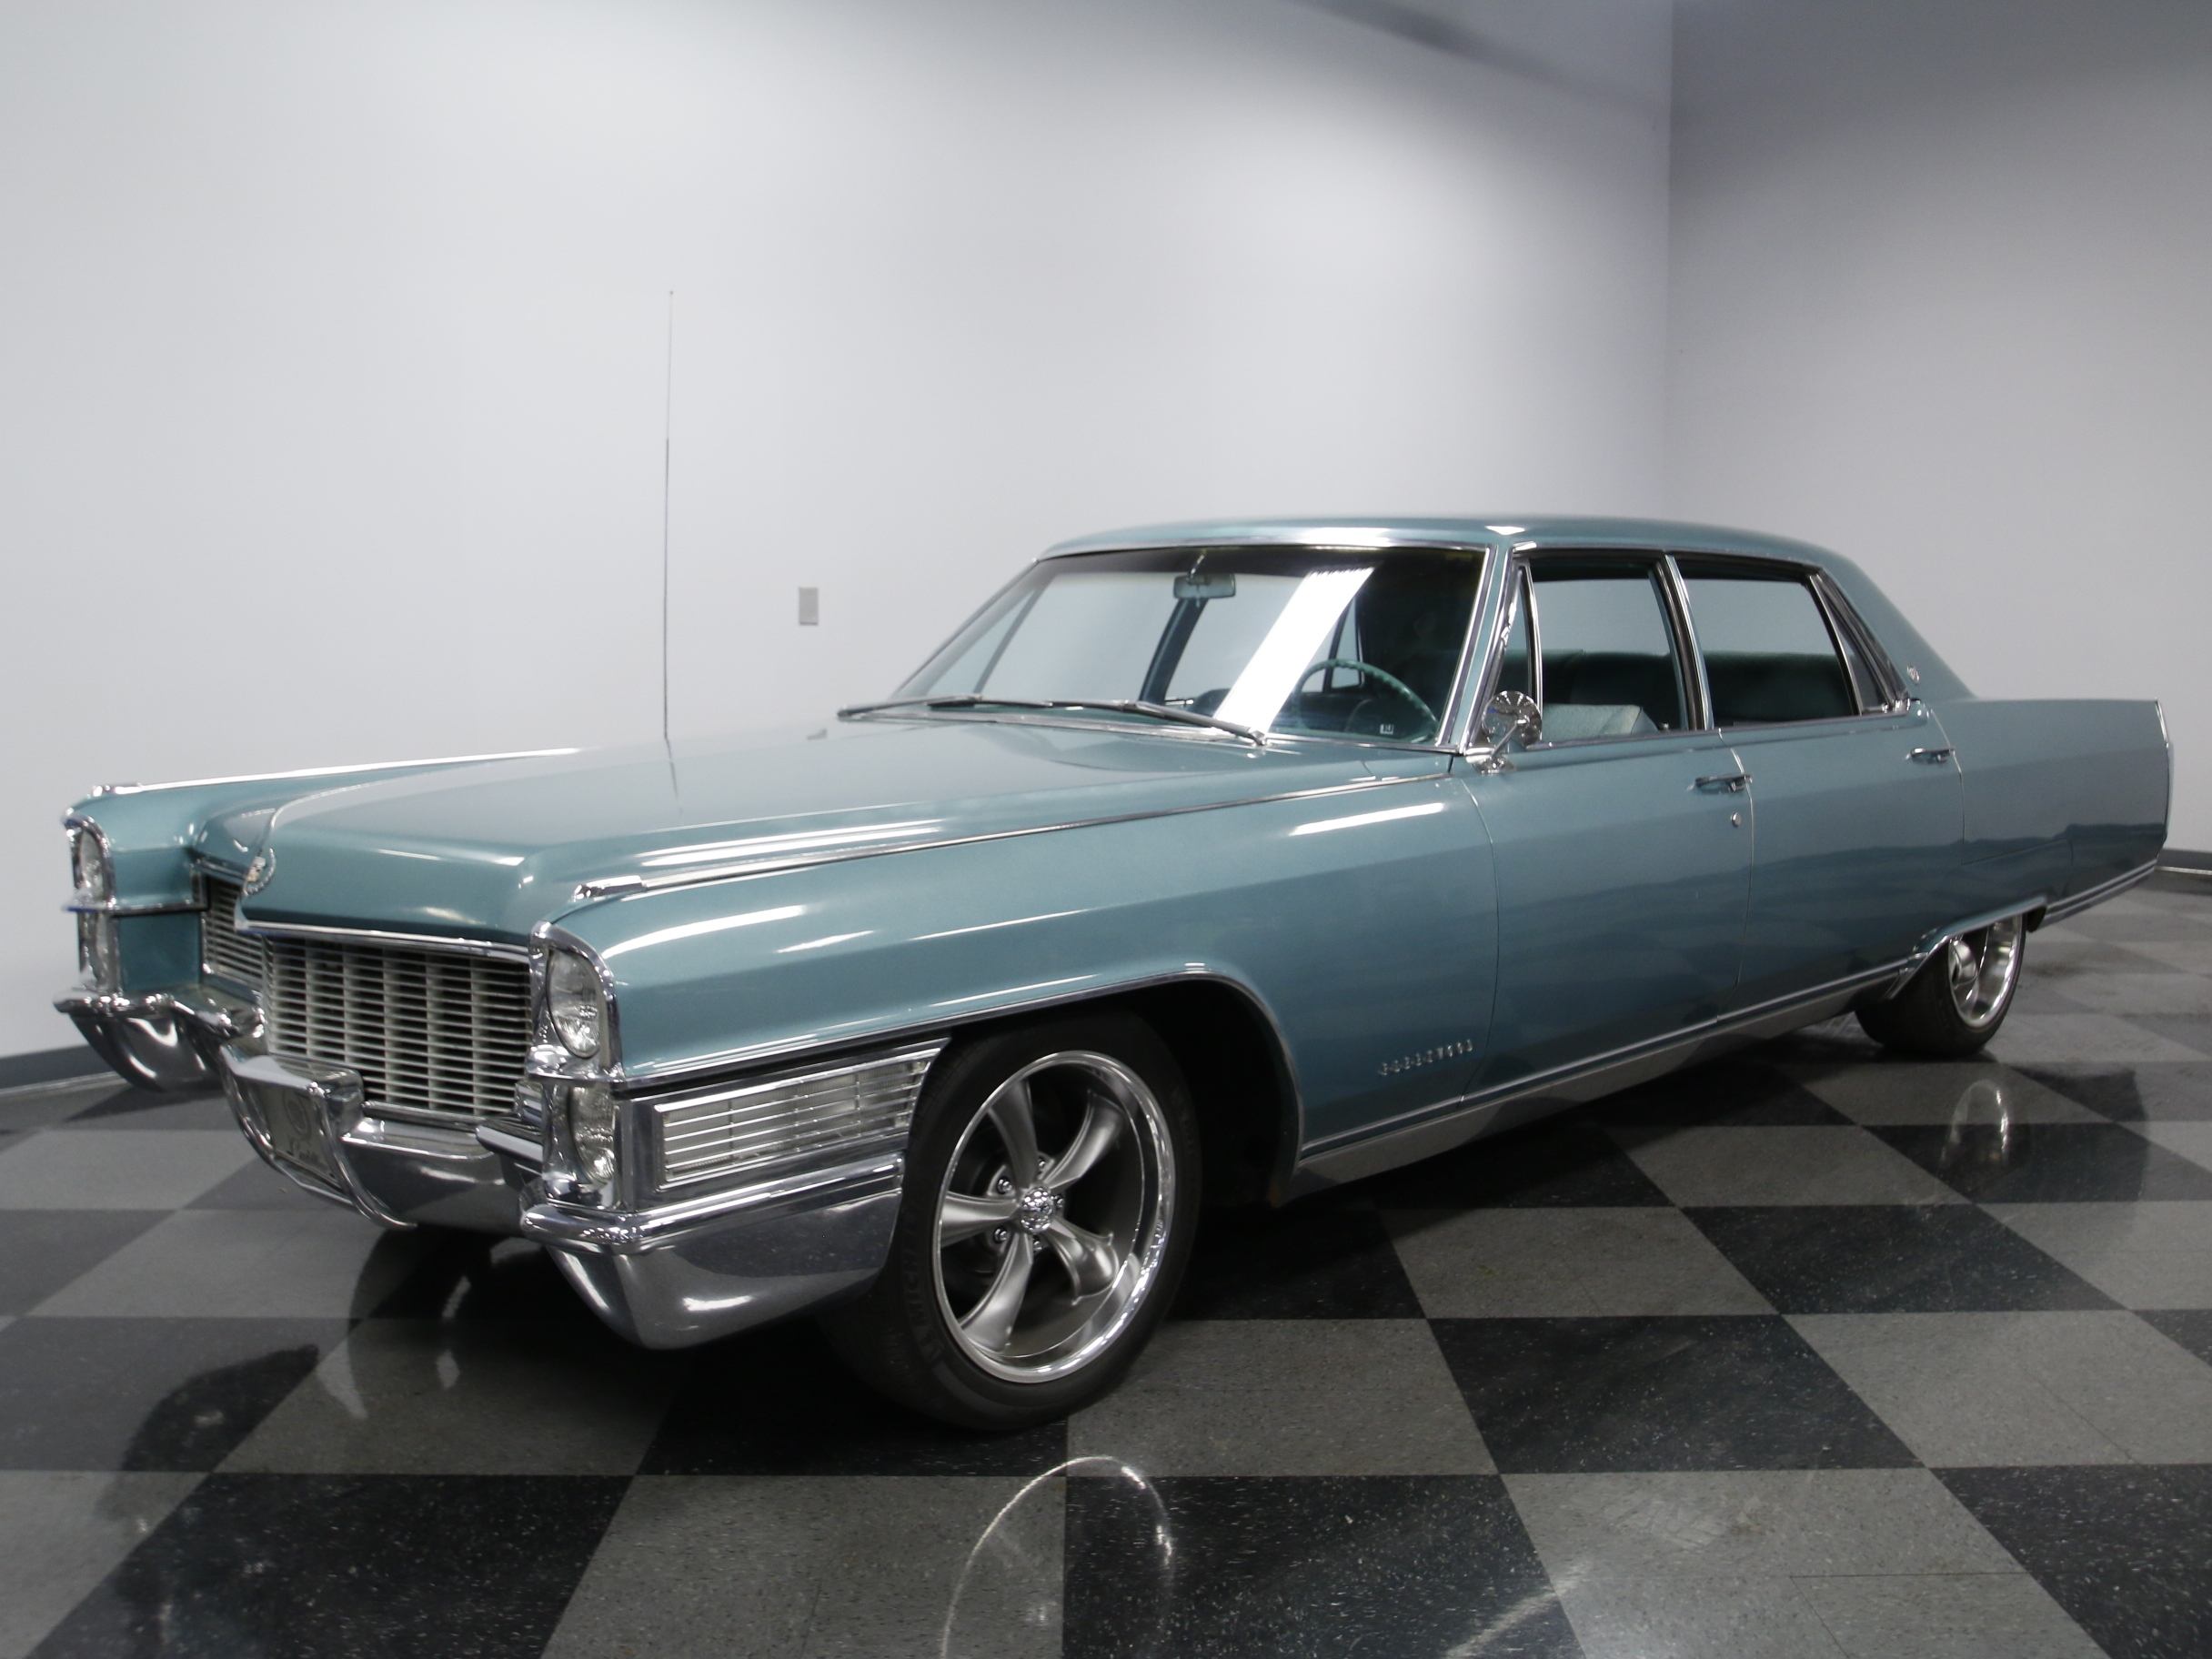 1965 cadillac fleetwood 60 special ebay for 429 cadillac motor for sale